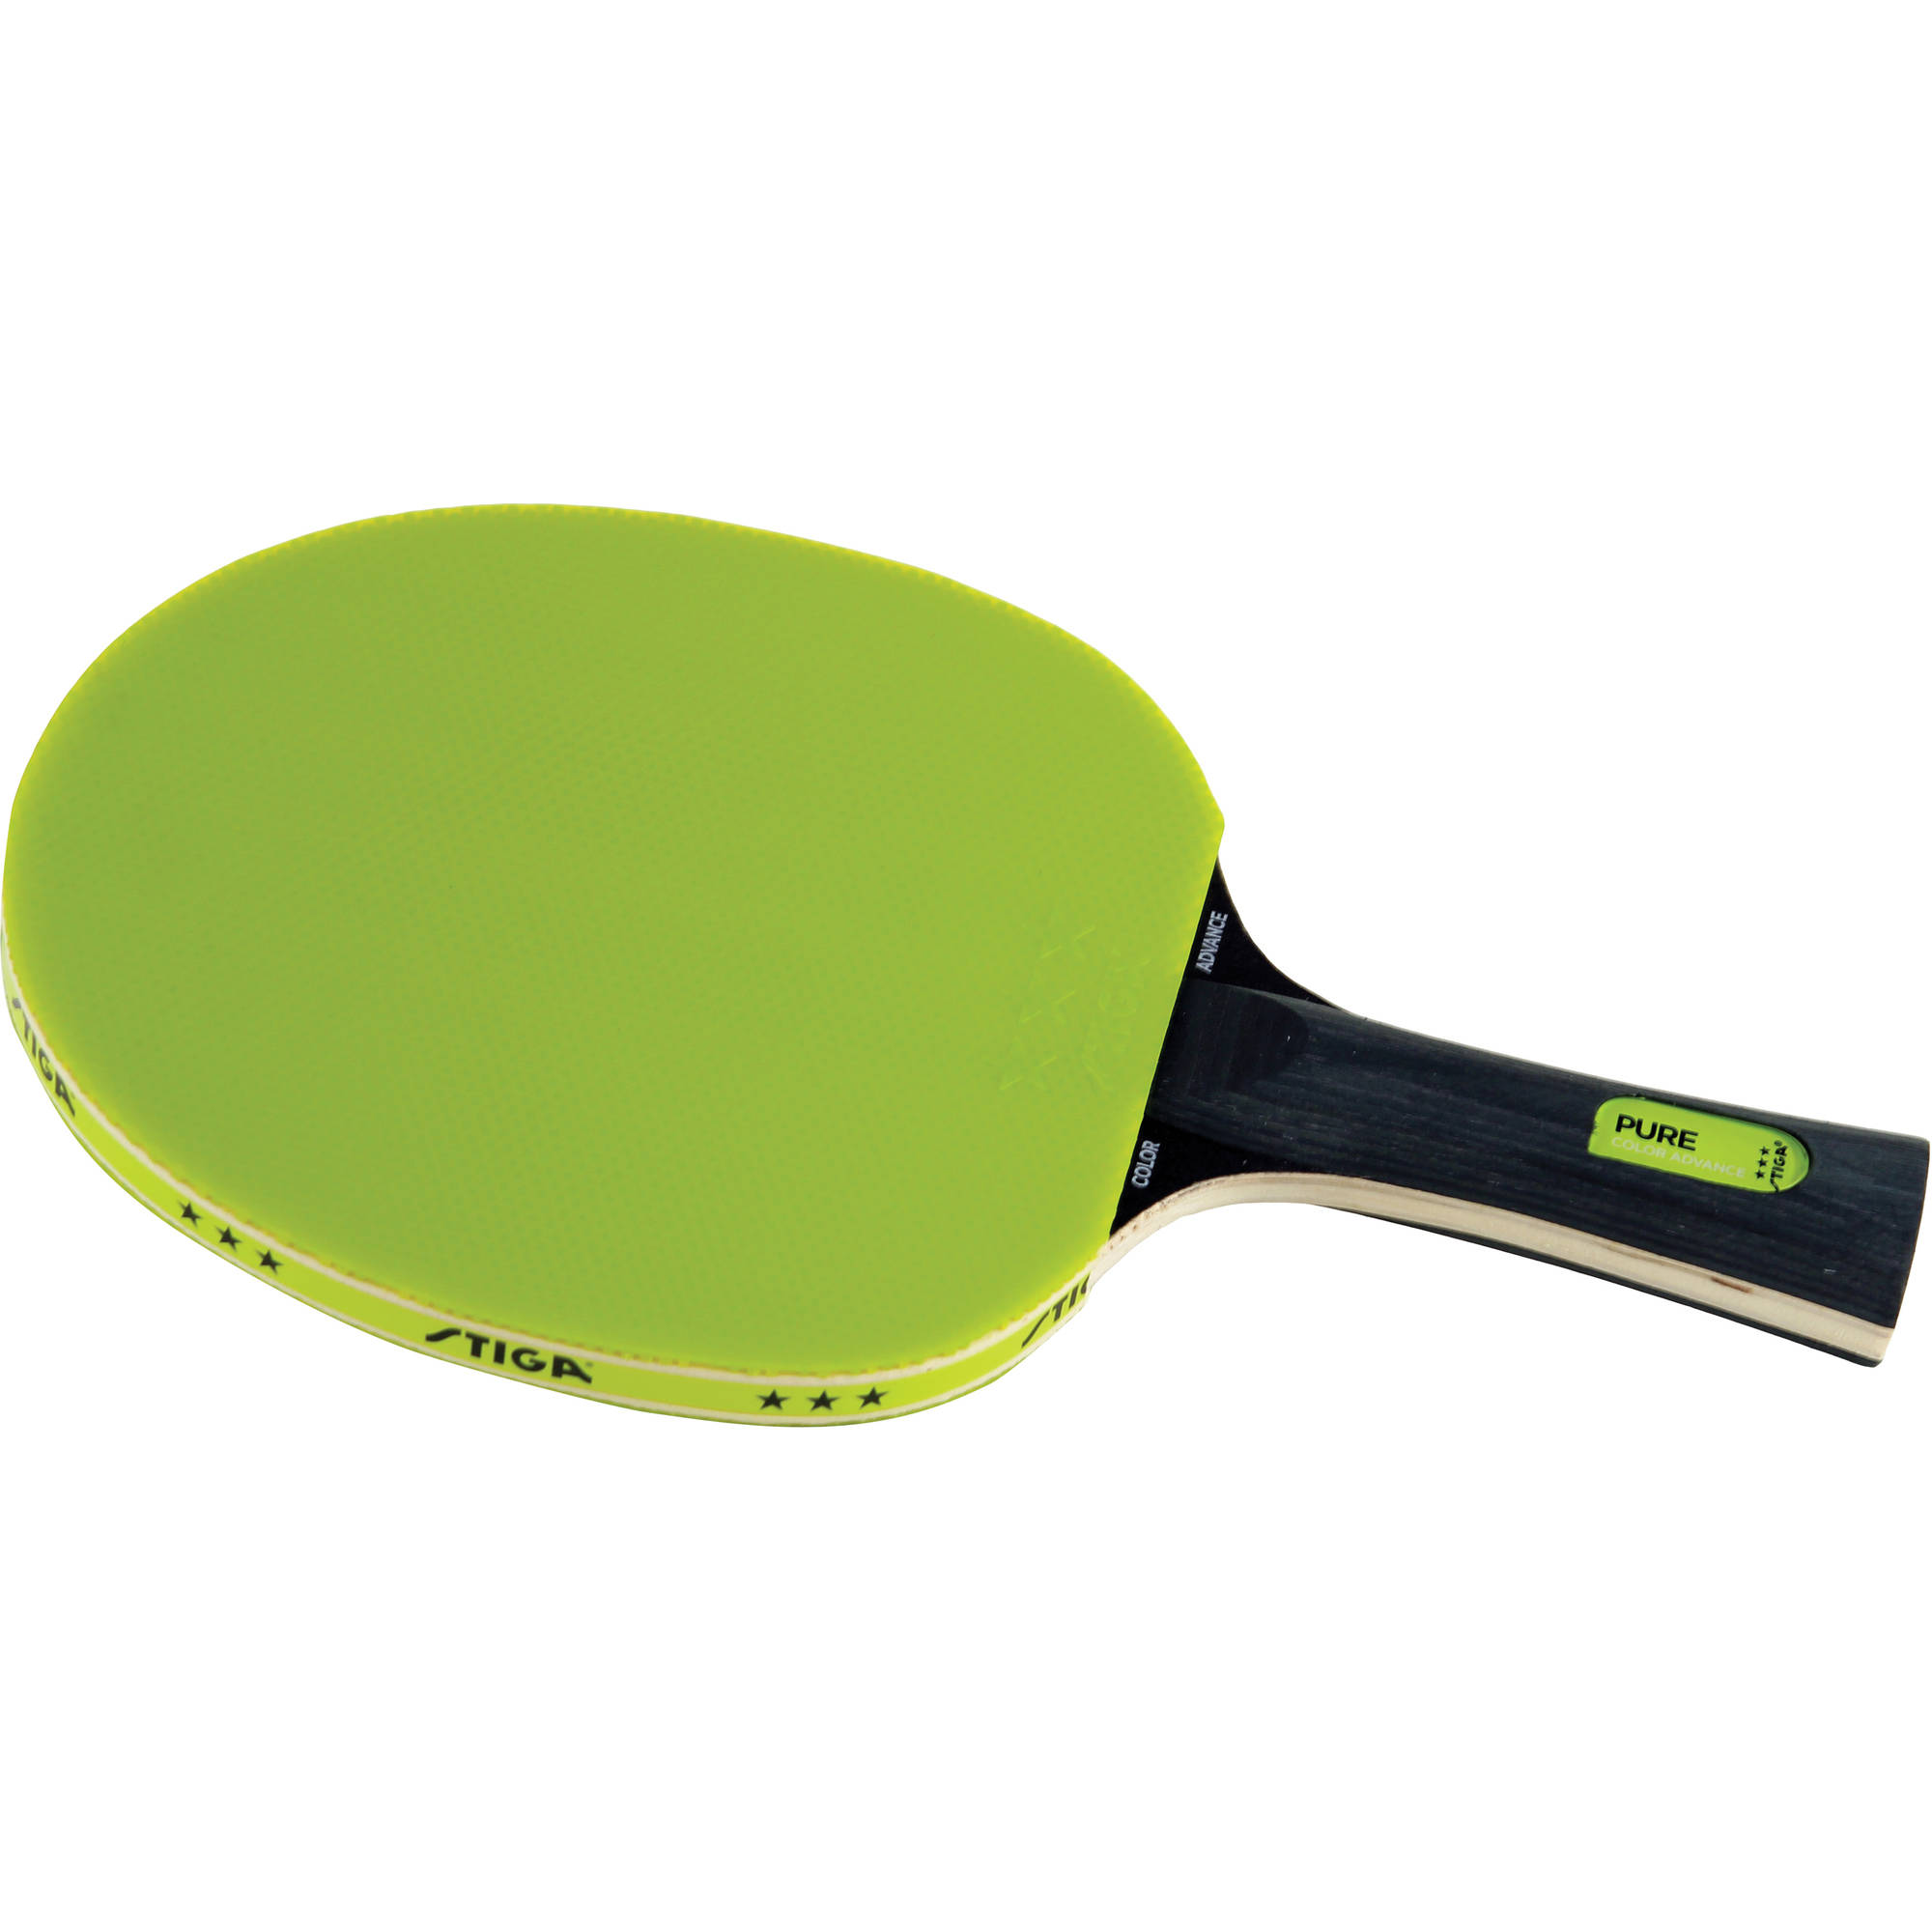 Stiga Pure Color Advance Racket, Green